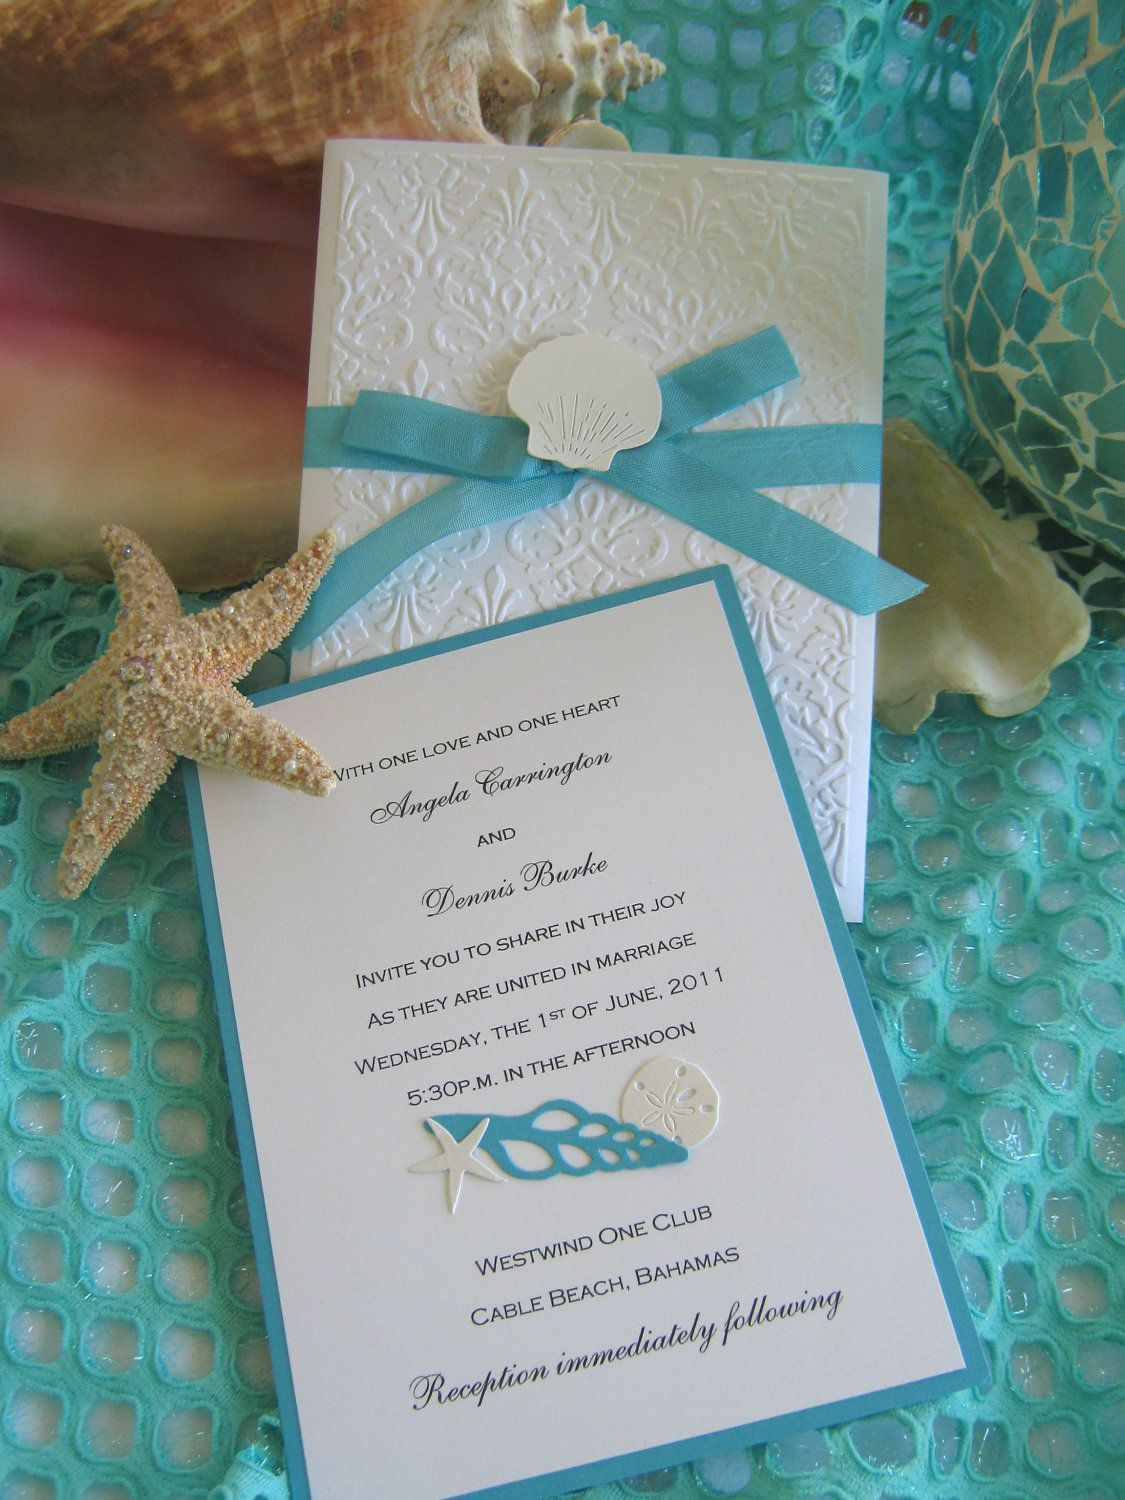 Seashell And Lace Beach Wedding Invitation 45 00 Via Etsy